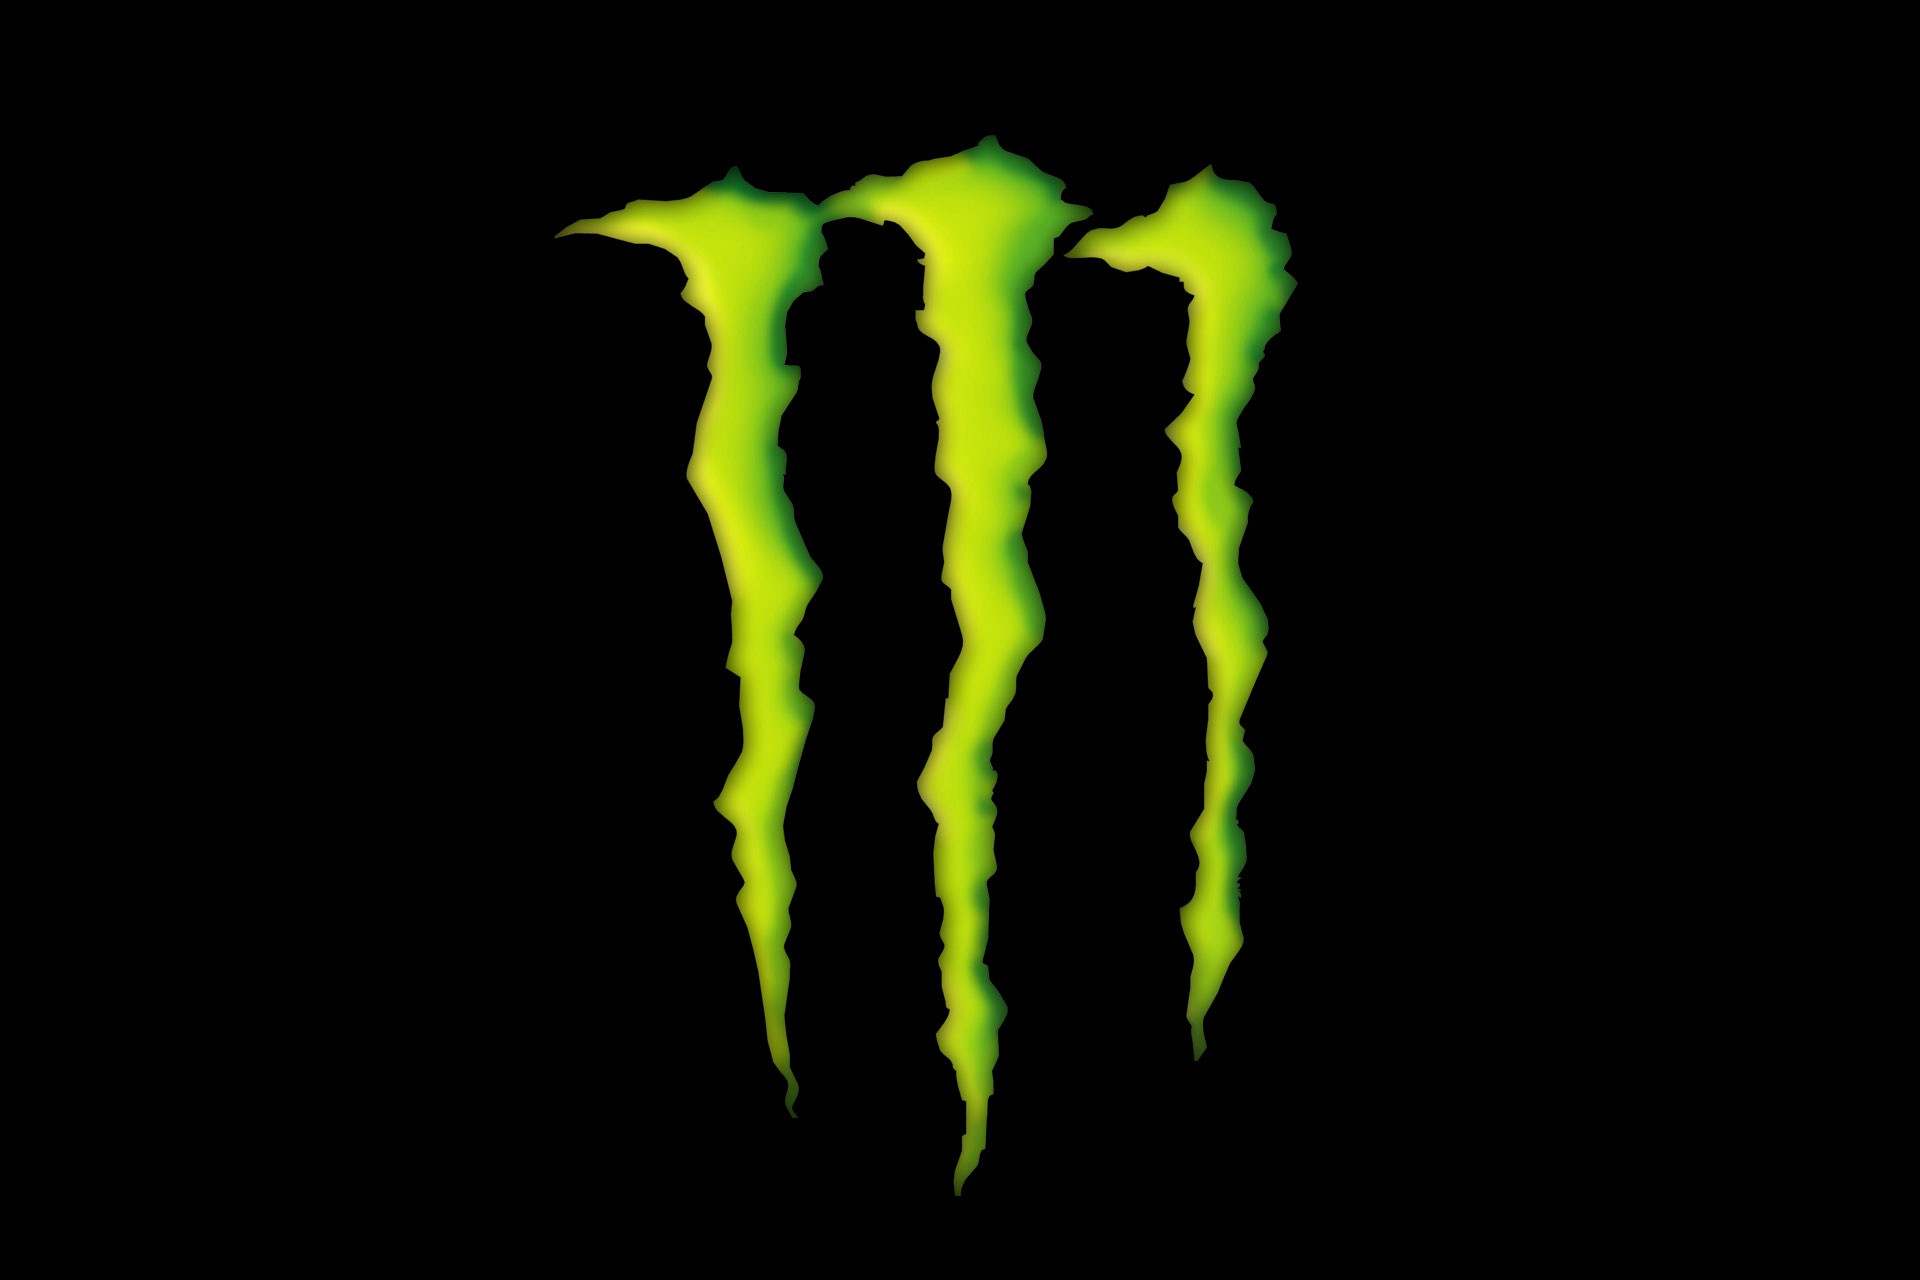 Monster Energy Drink Logo in 3D Wallpaper for Amazon Kindle Fire HD 7 1920x1280